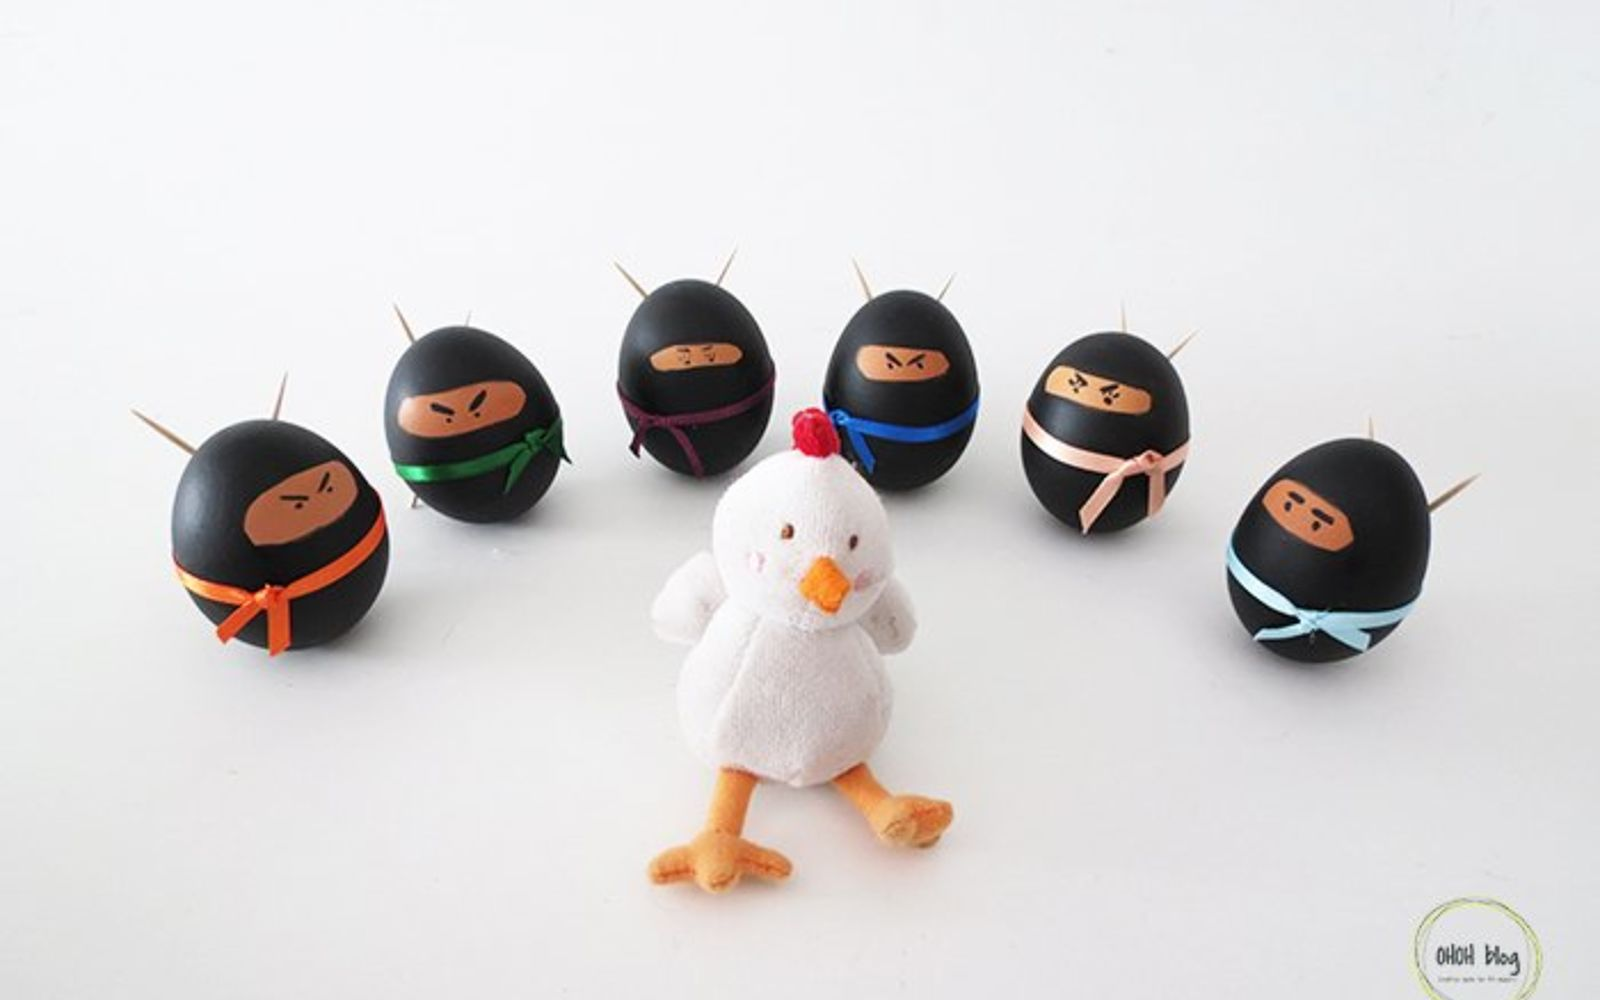 s 25 quick easter egg ideas that are just too stinkin cute, crafts, easter decorations, Paint a crowd of ninjas